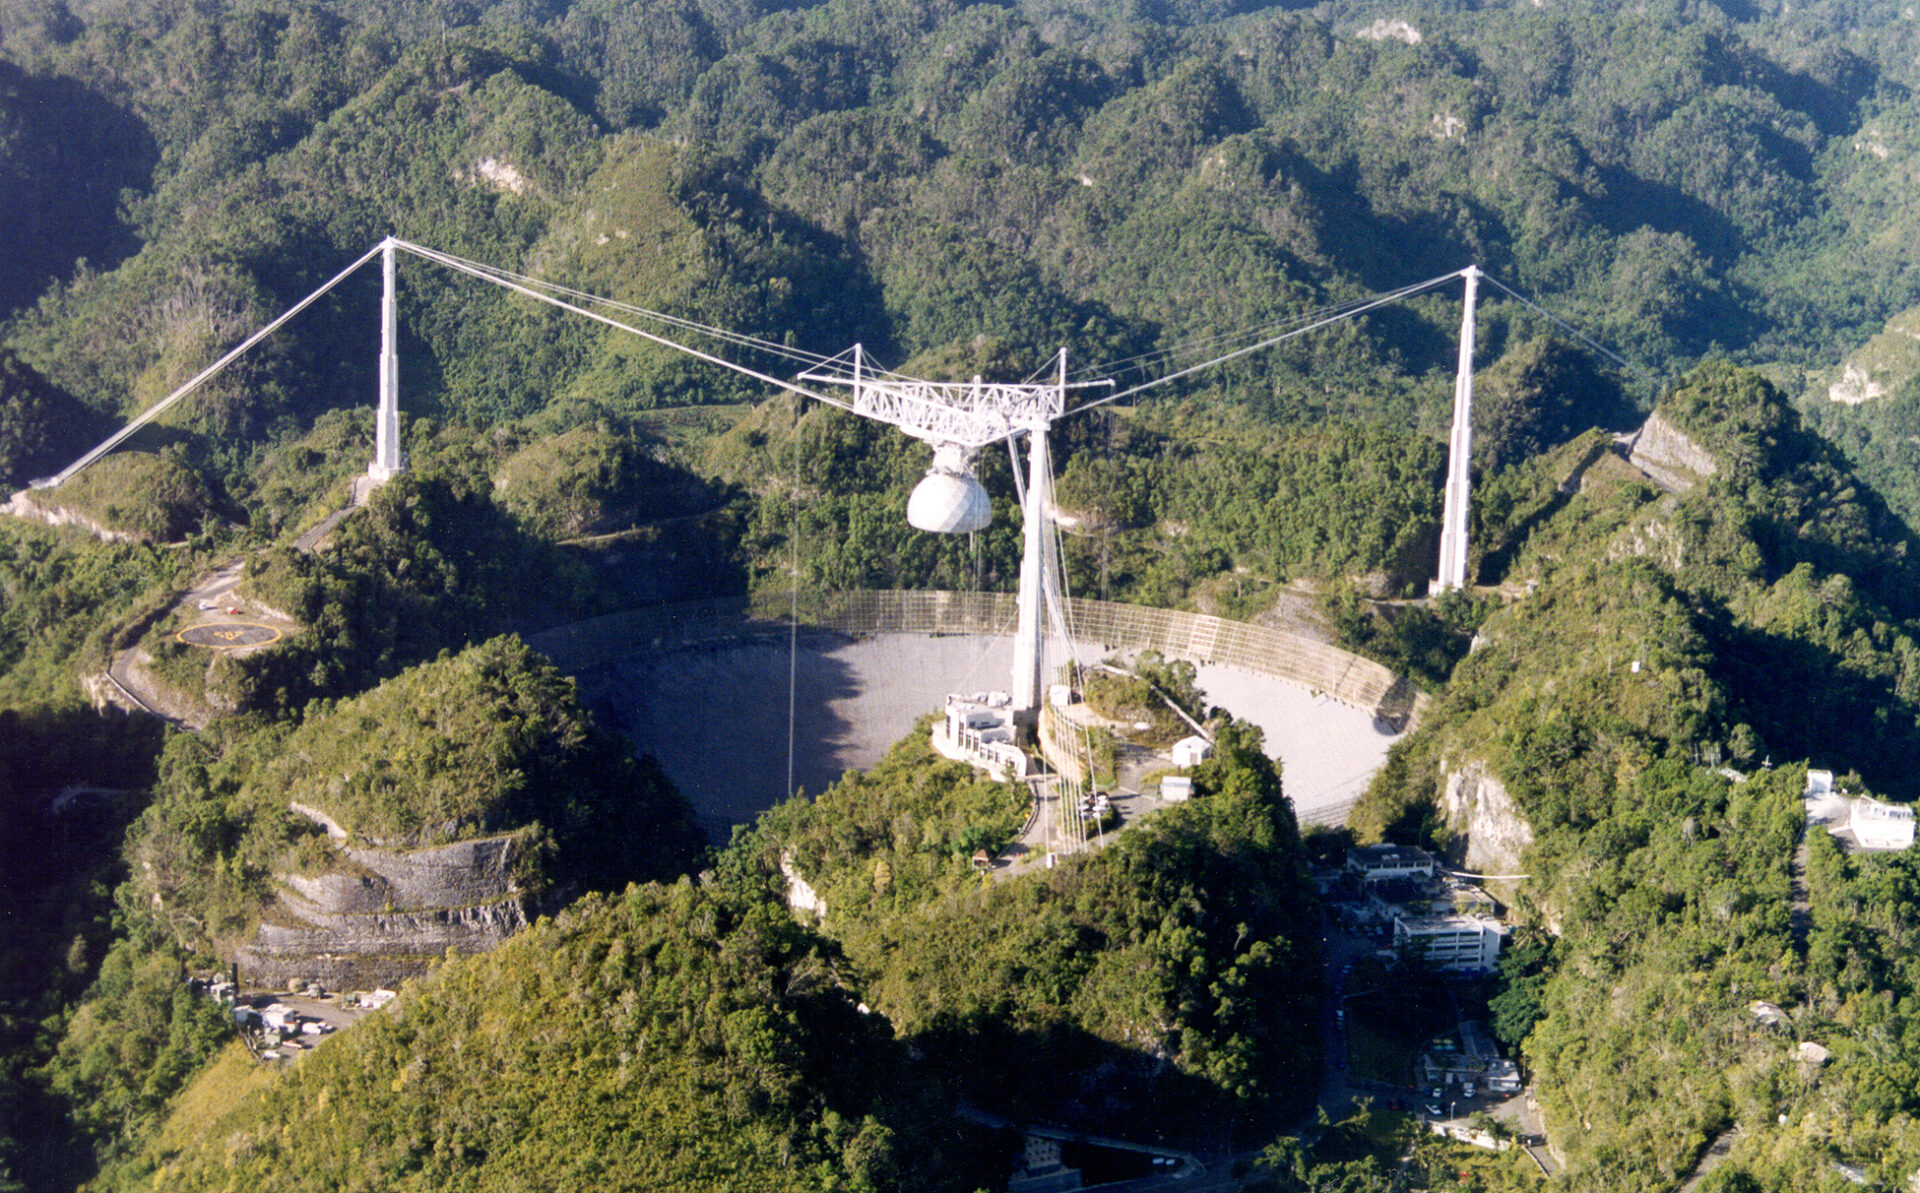 An aerial view of Arecibo Observatory in Puerto Rico, pre-hurricane. (Source: The Arecibo Observatory)